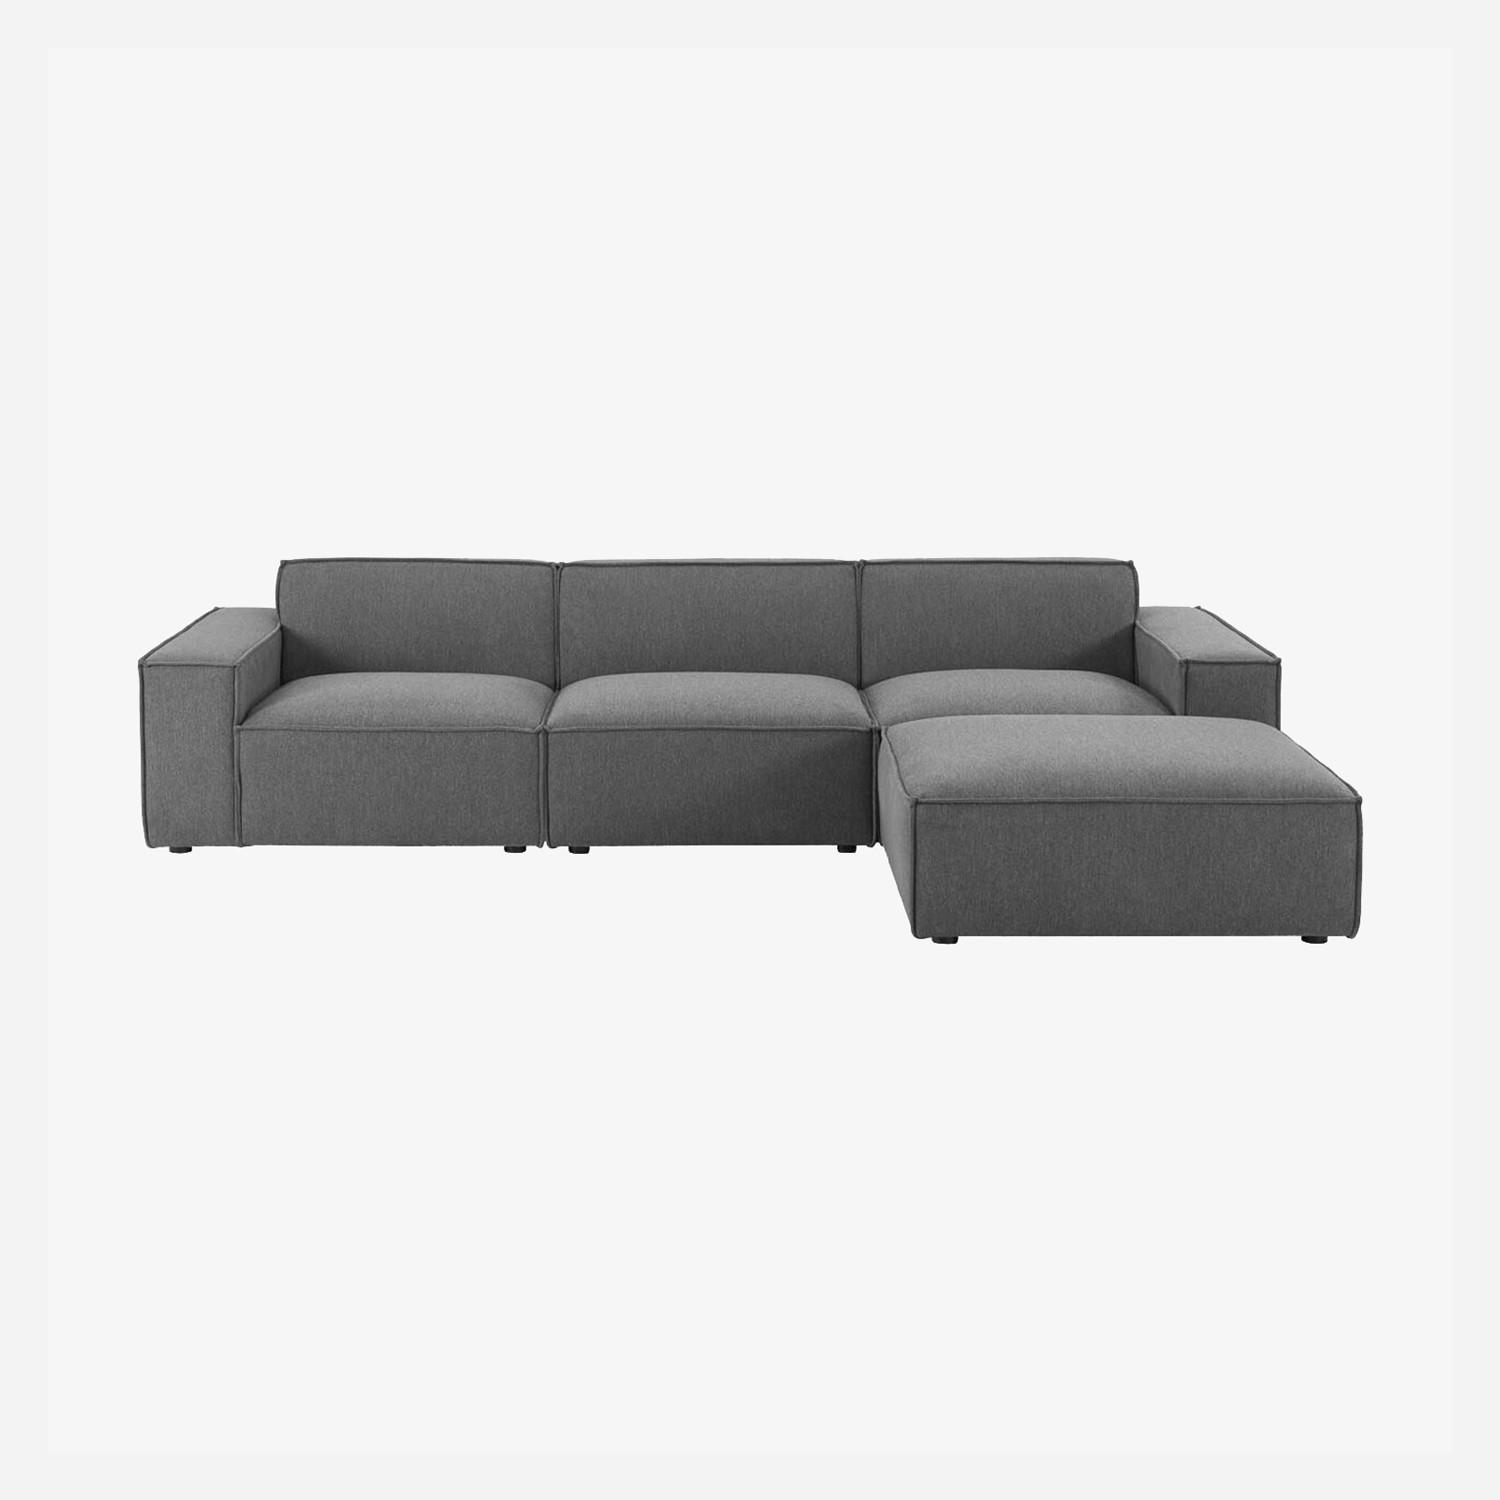 4-Piece Sectional Sofa In Charcoal Fabric Finish - image-11